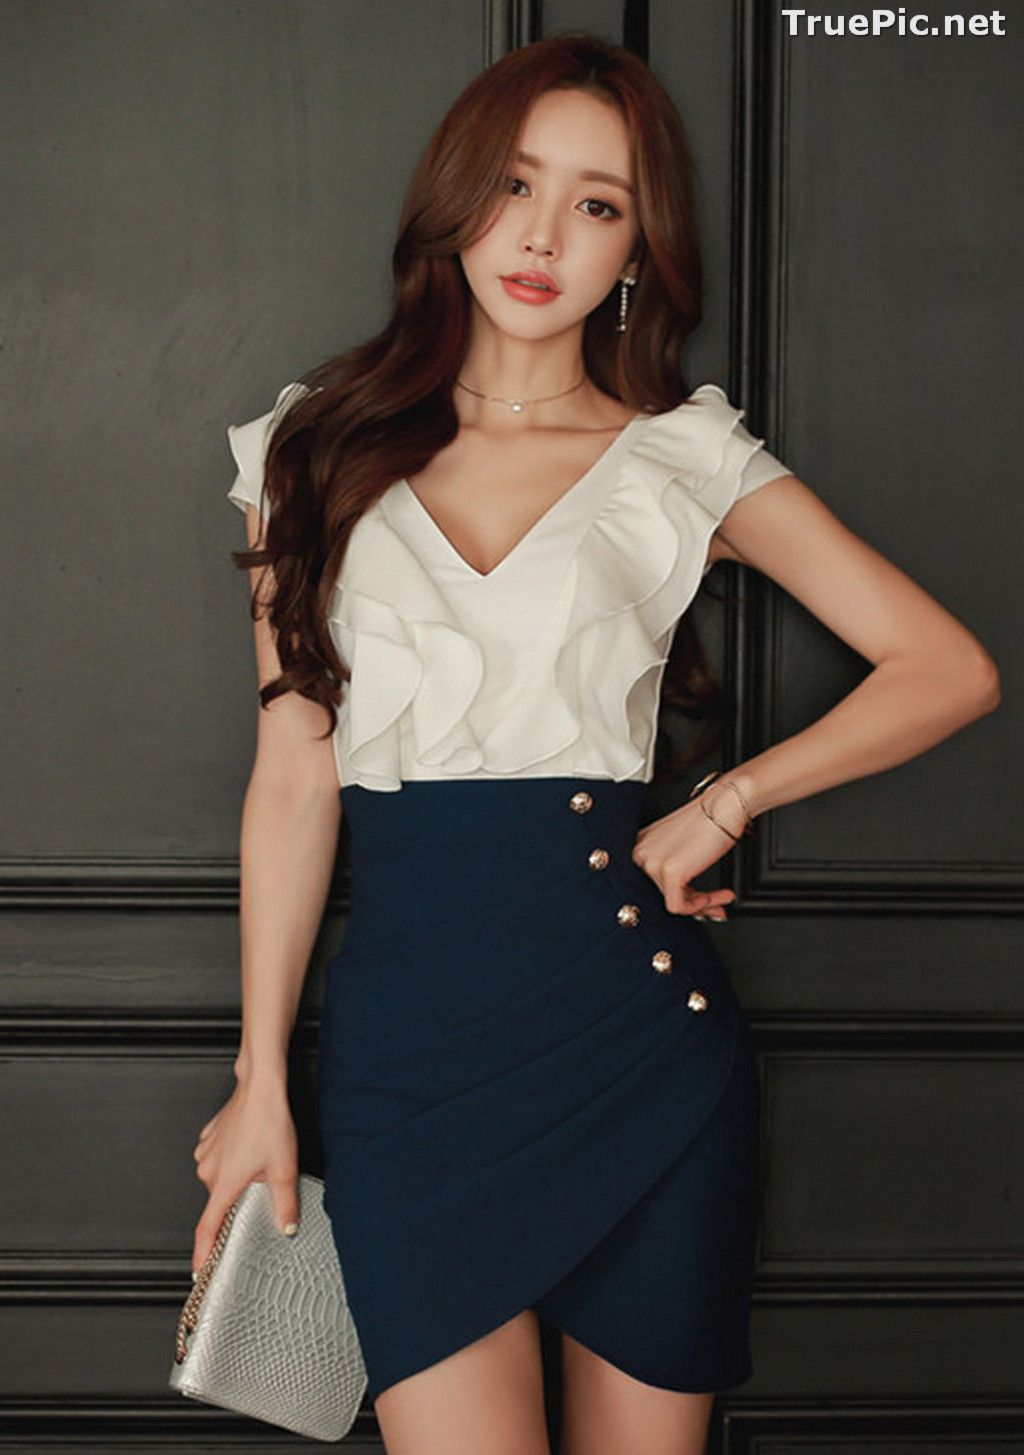 Image Son Yoon Joo Beautiful Photos – Korean Fashion Collection #4 - TruePic.net - Picture-3